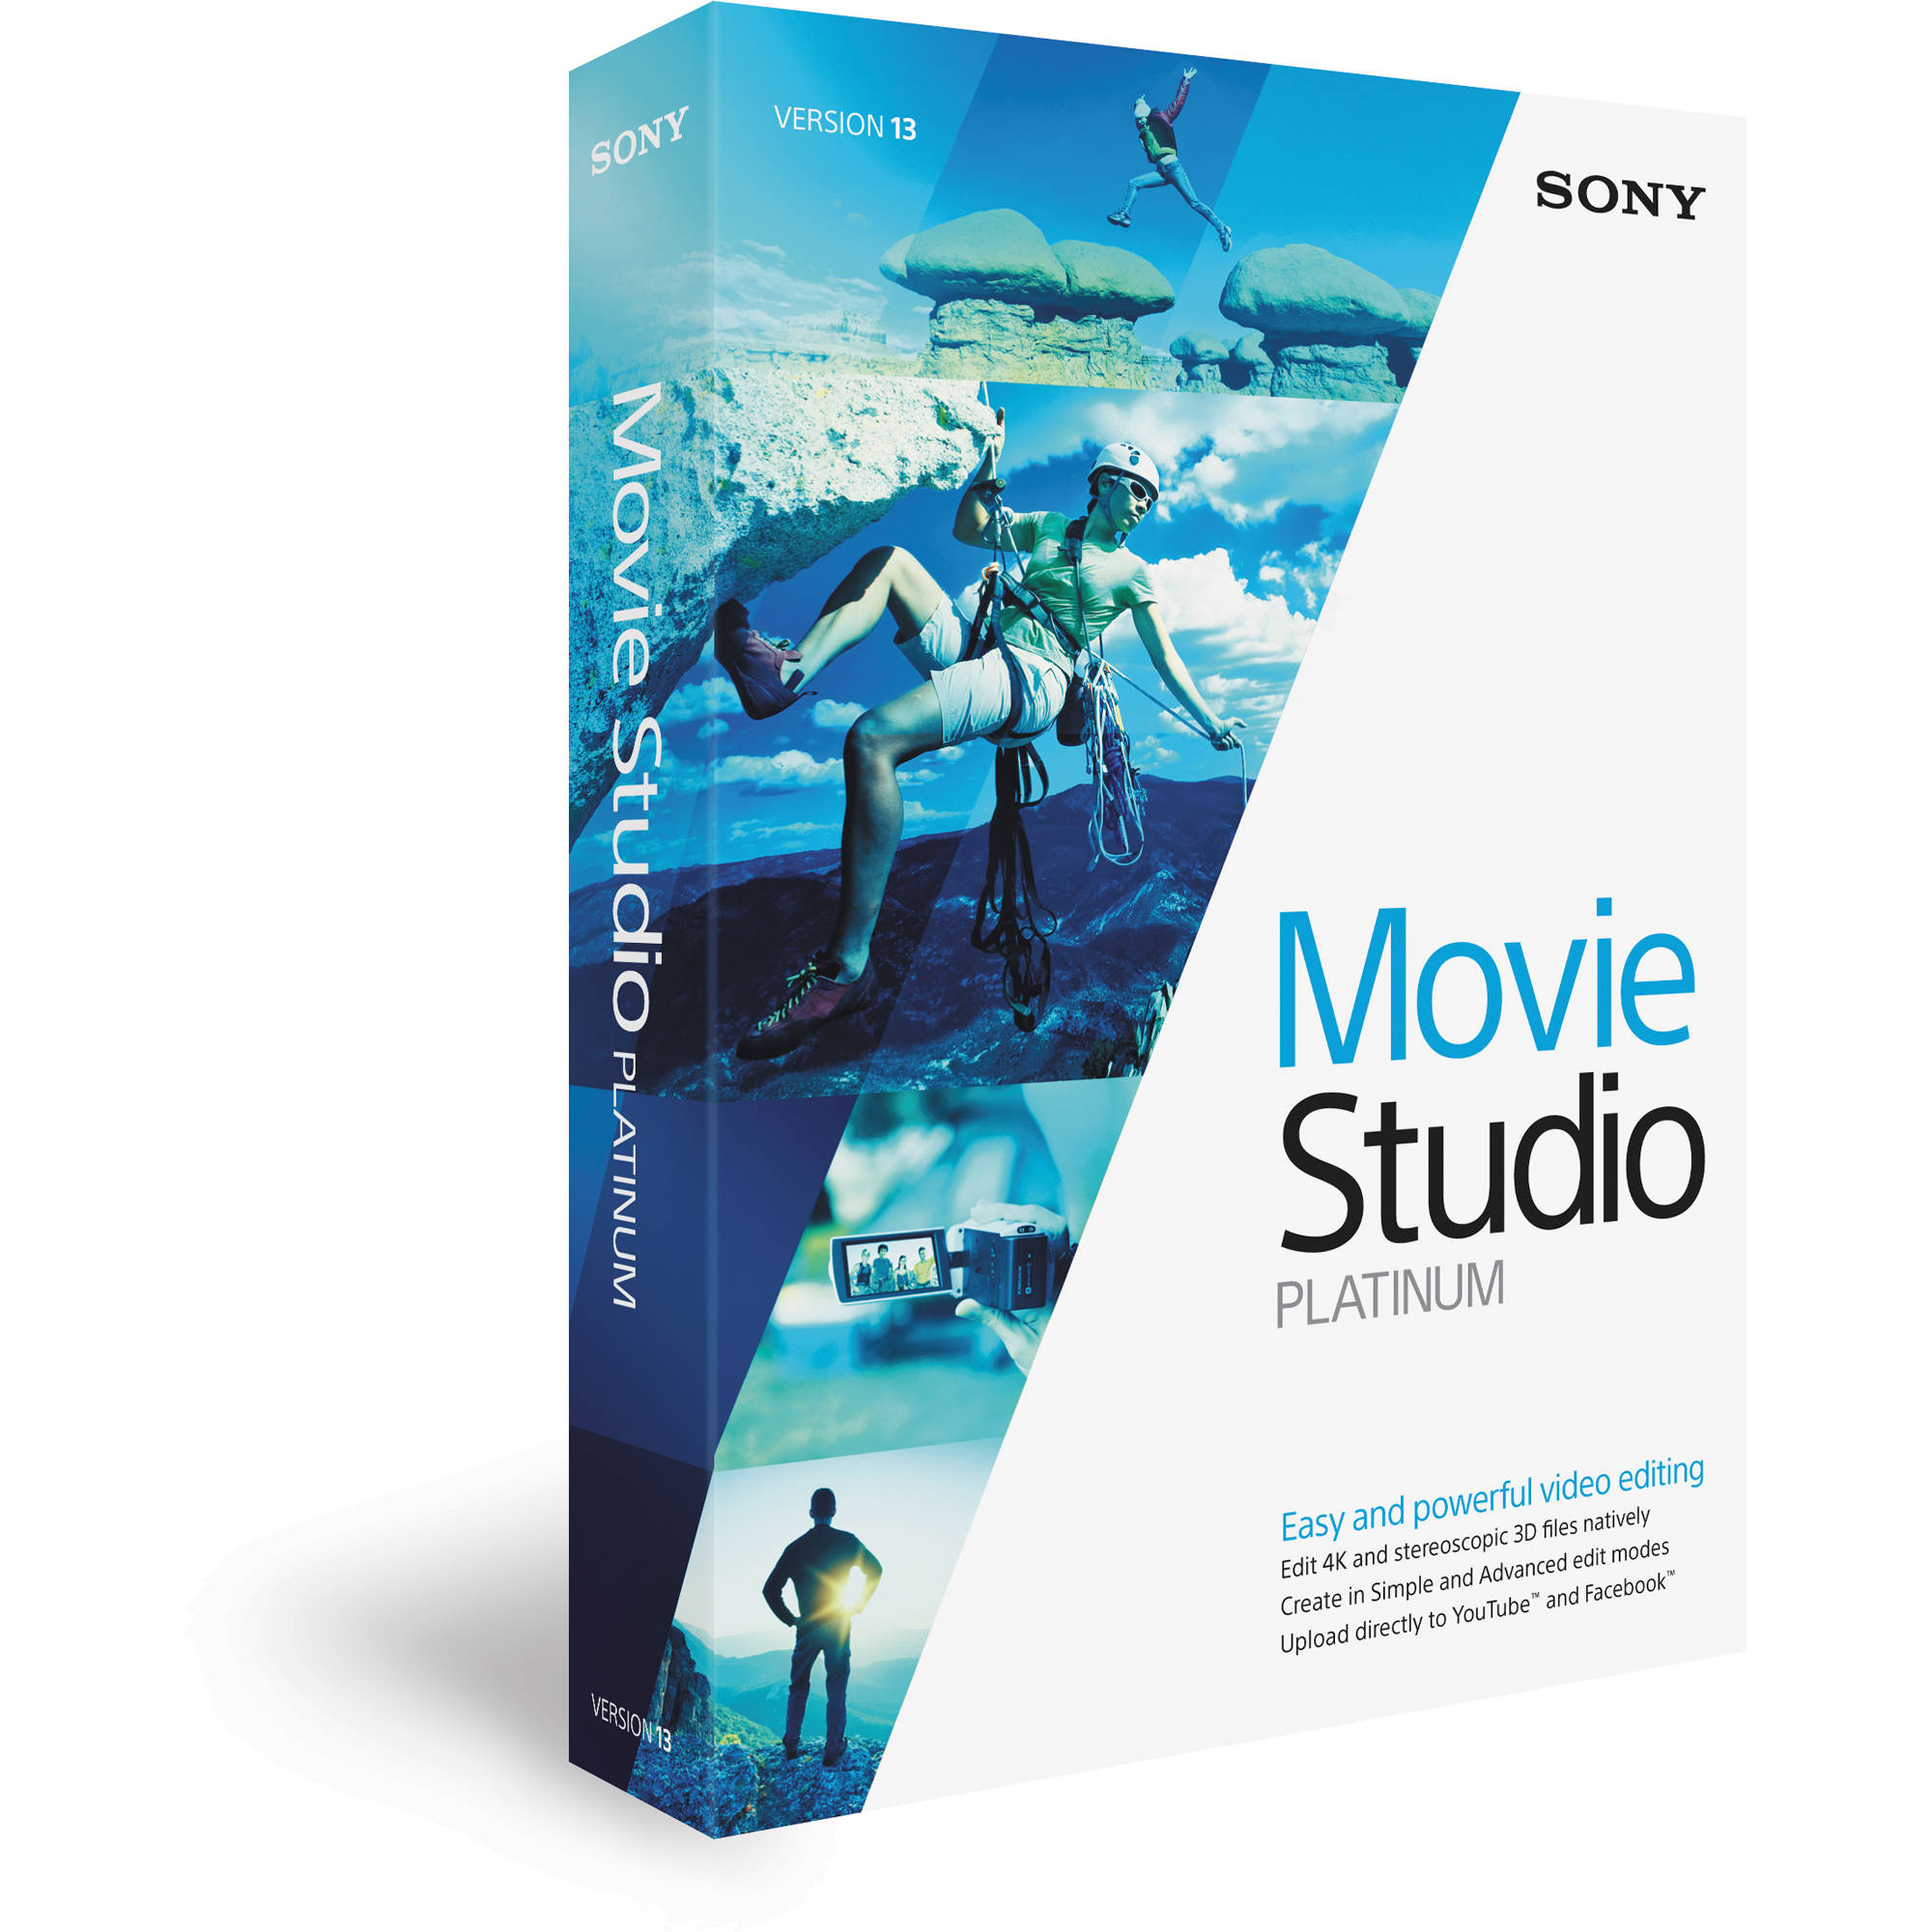 MAGIX Entertainment VEGAS Movie Studio Platinum 13 (Boxed)